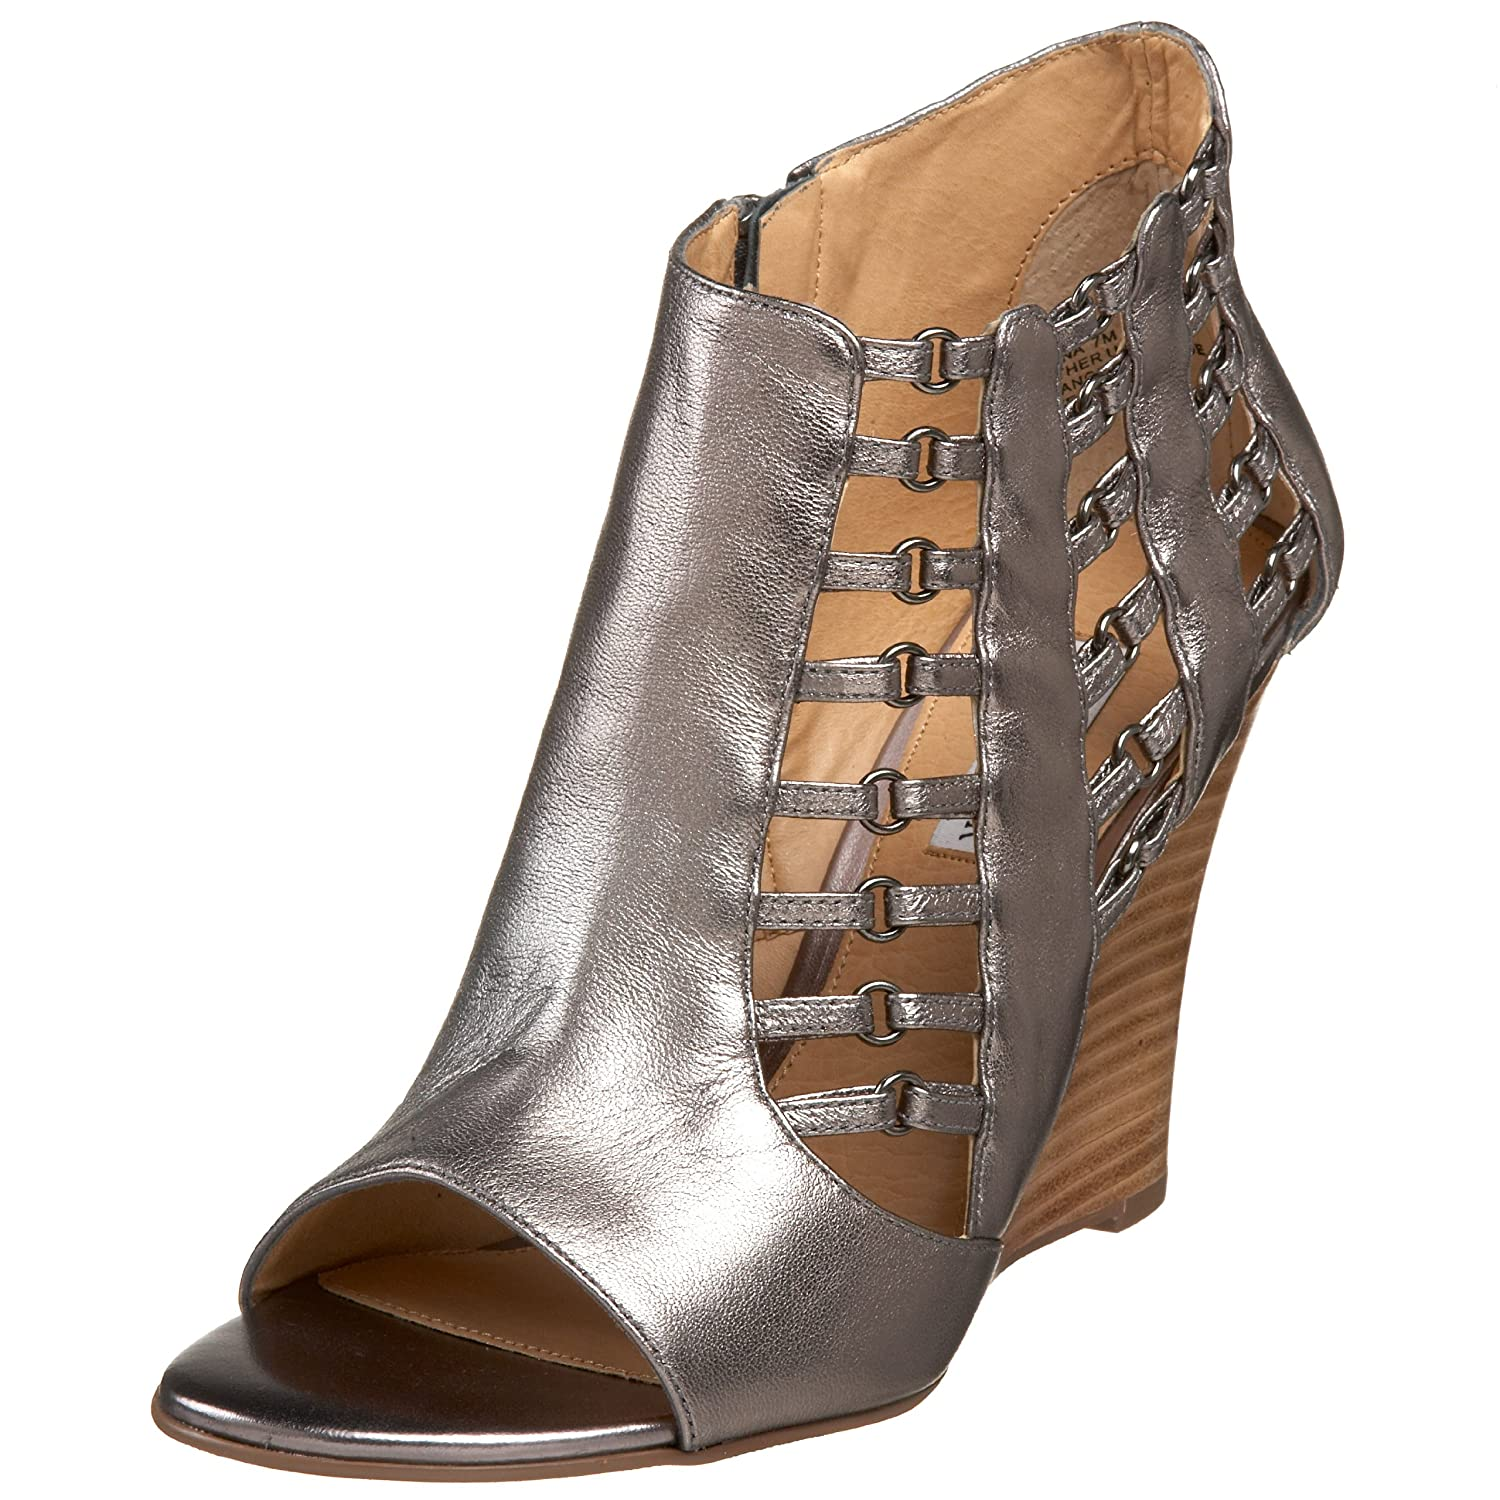 Kelsi Dagger - Karina Ankle Boot from amazon.com